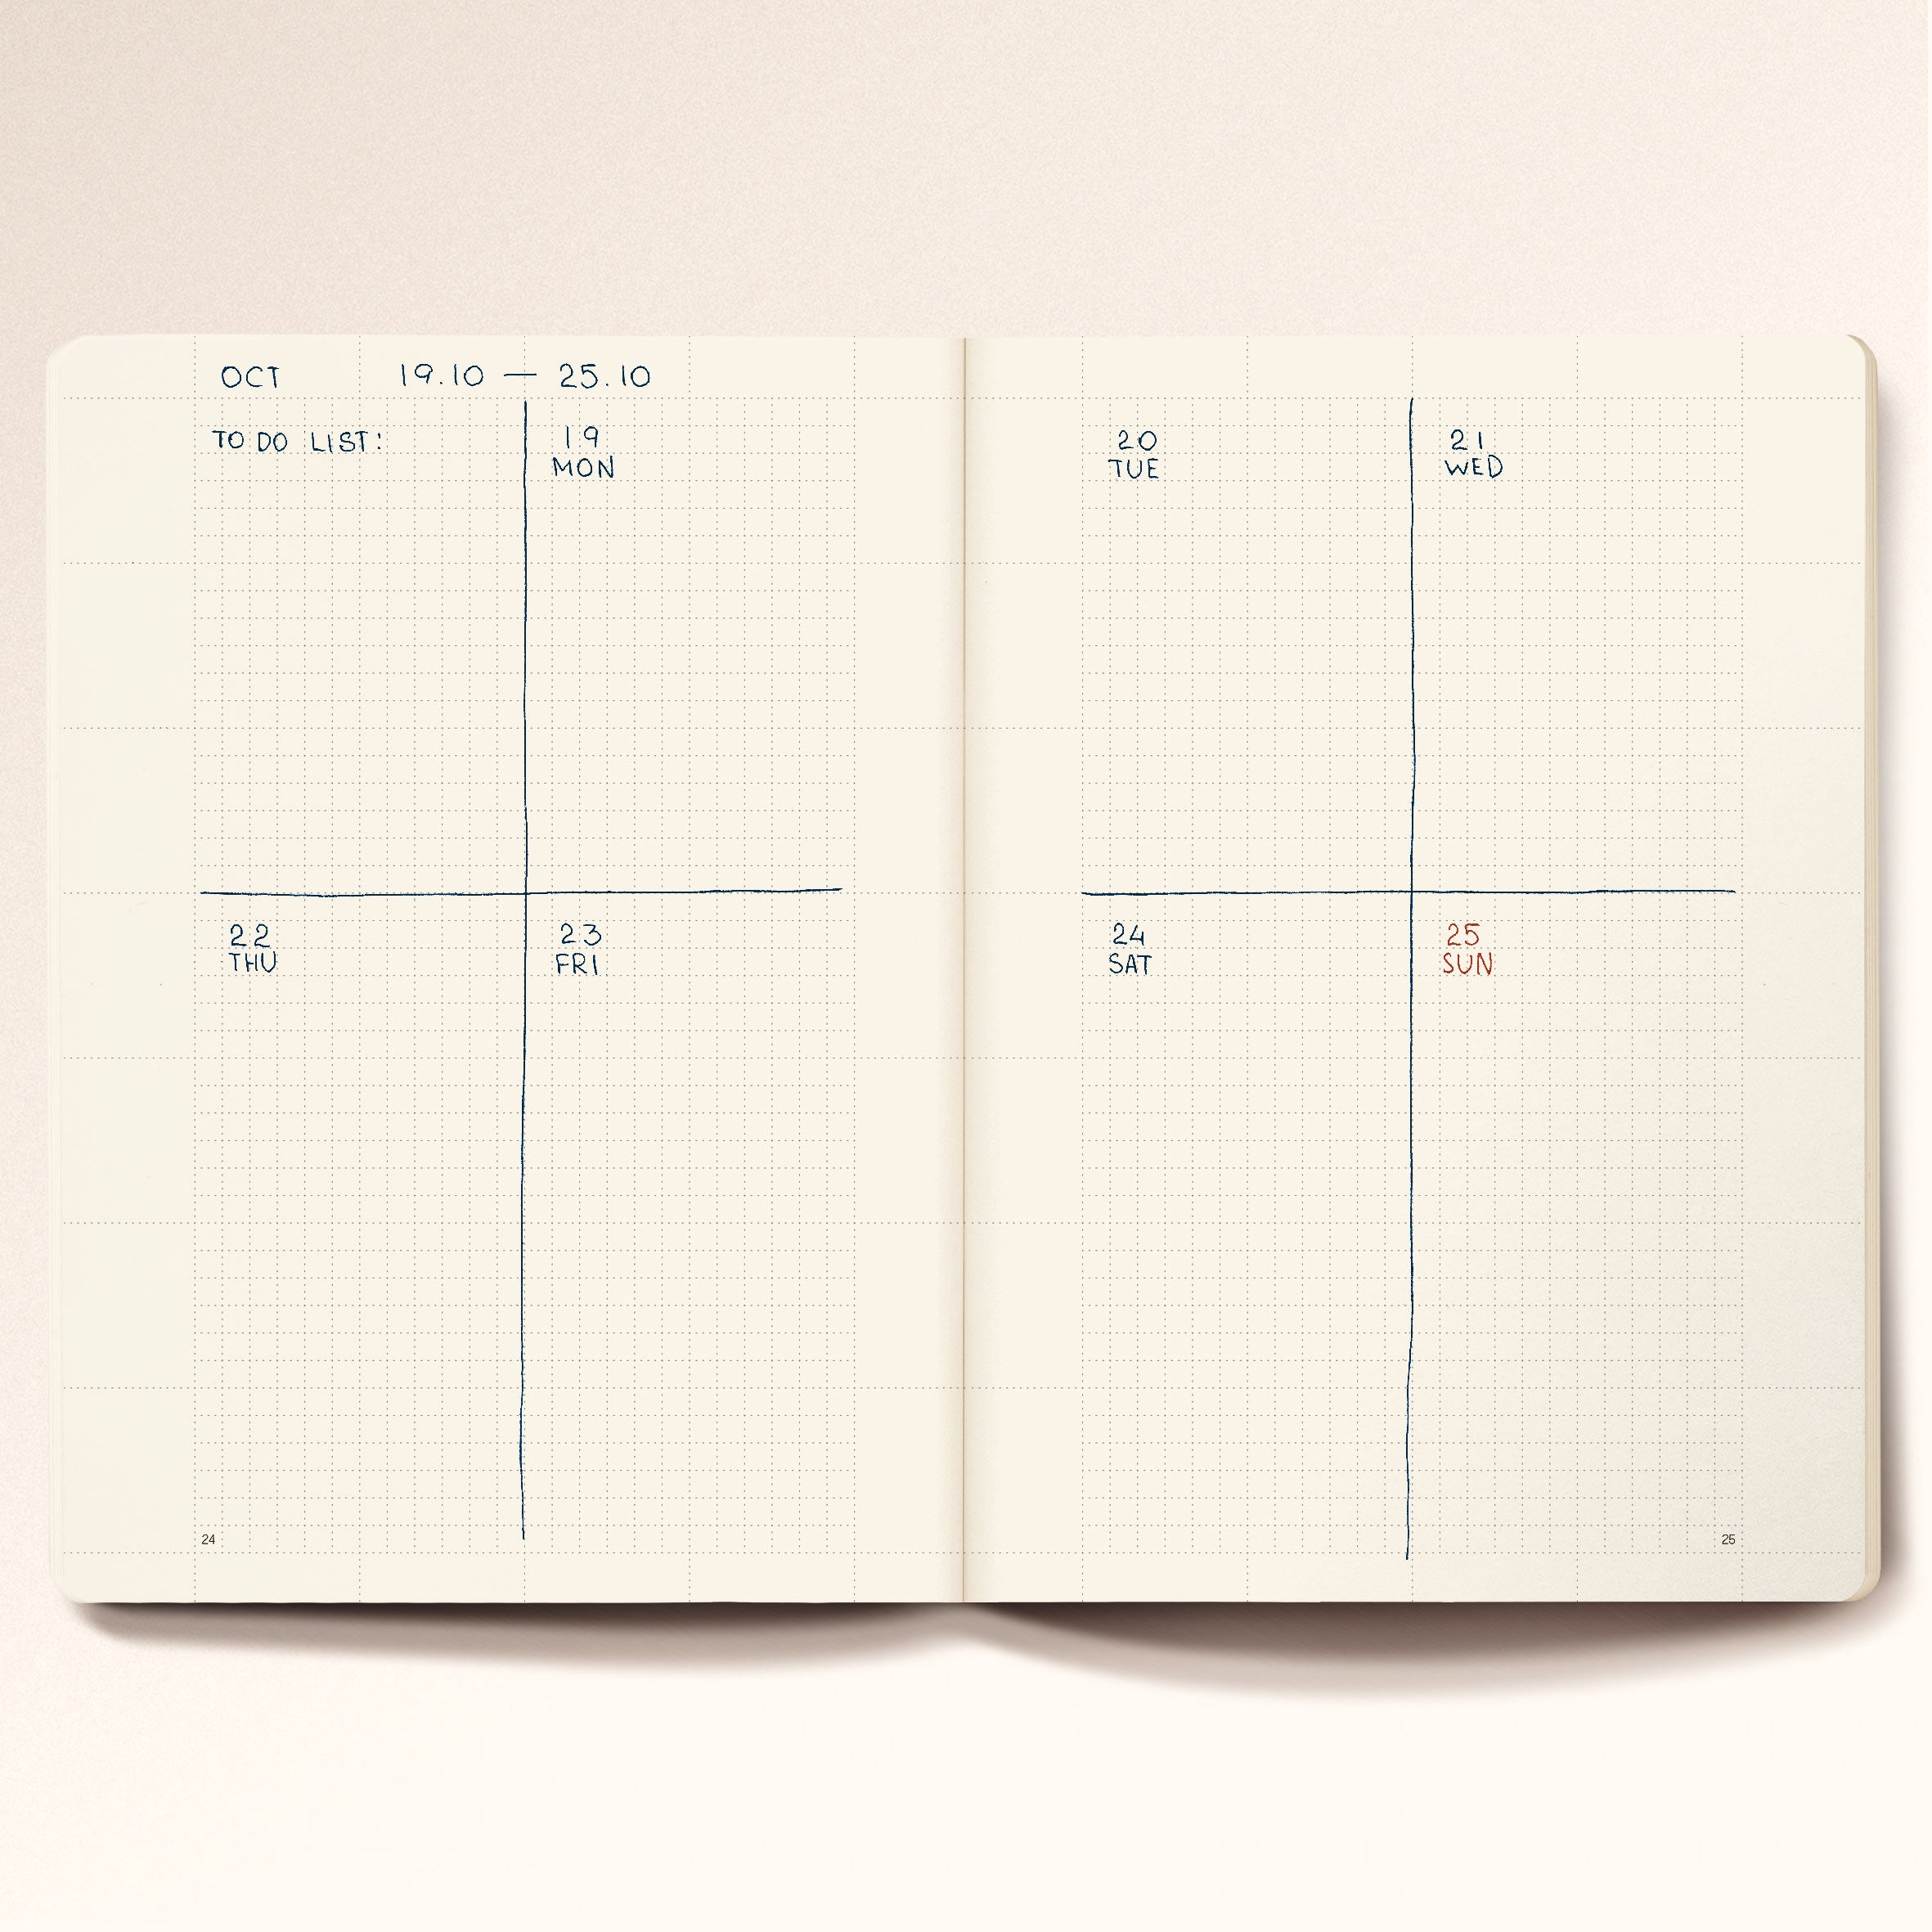 N.207 (Universal Planner). B6 size